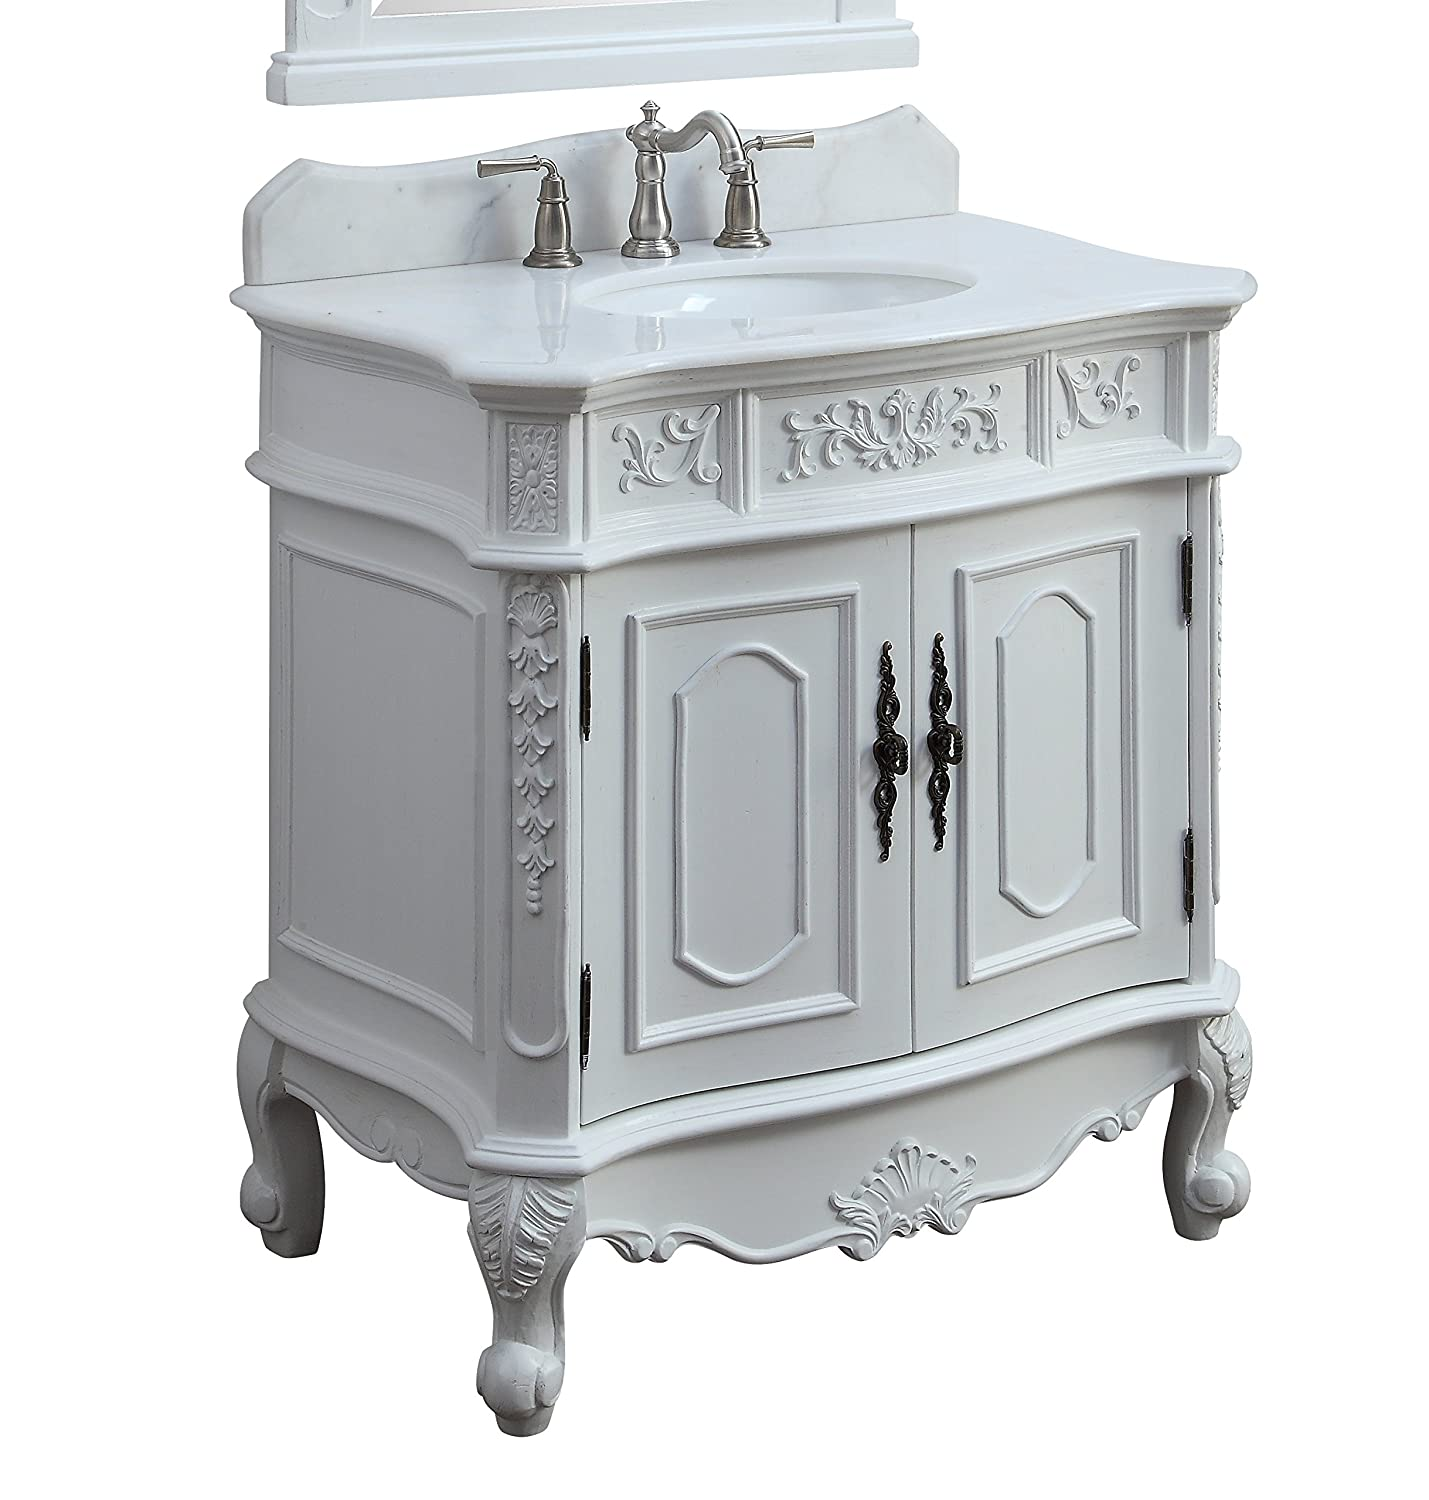 33 Benton Collection Unique Classic Benson Bathroom Sink Vanity Model HF021W-AW-33